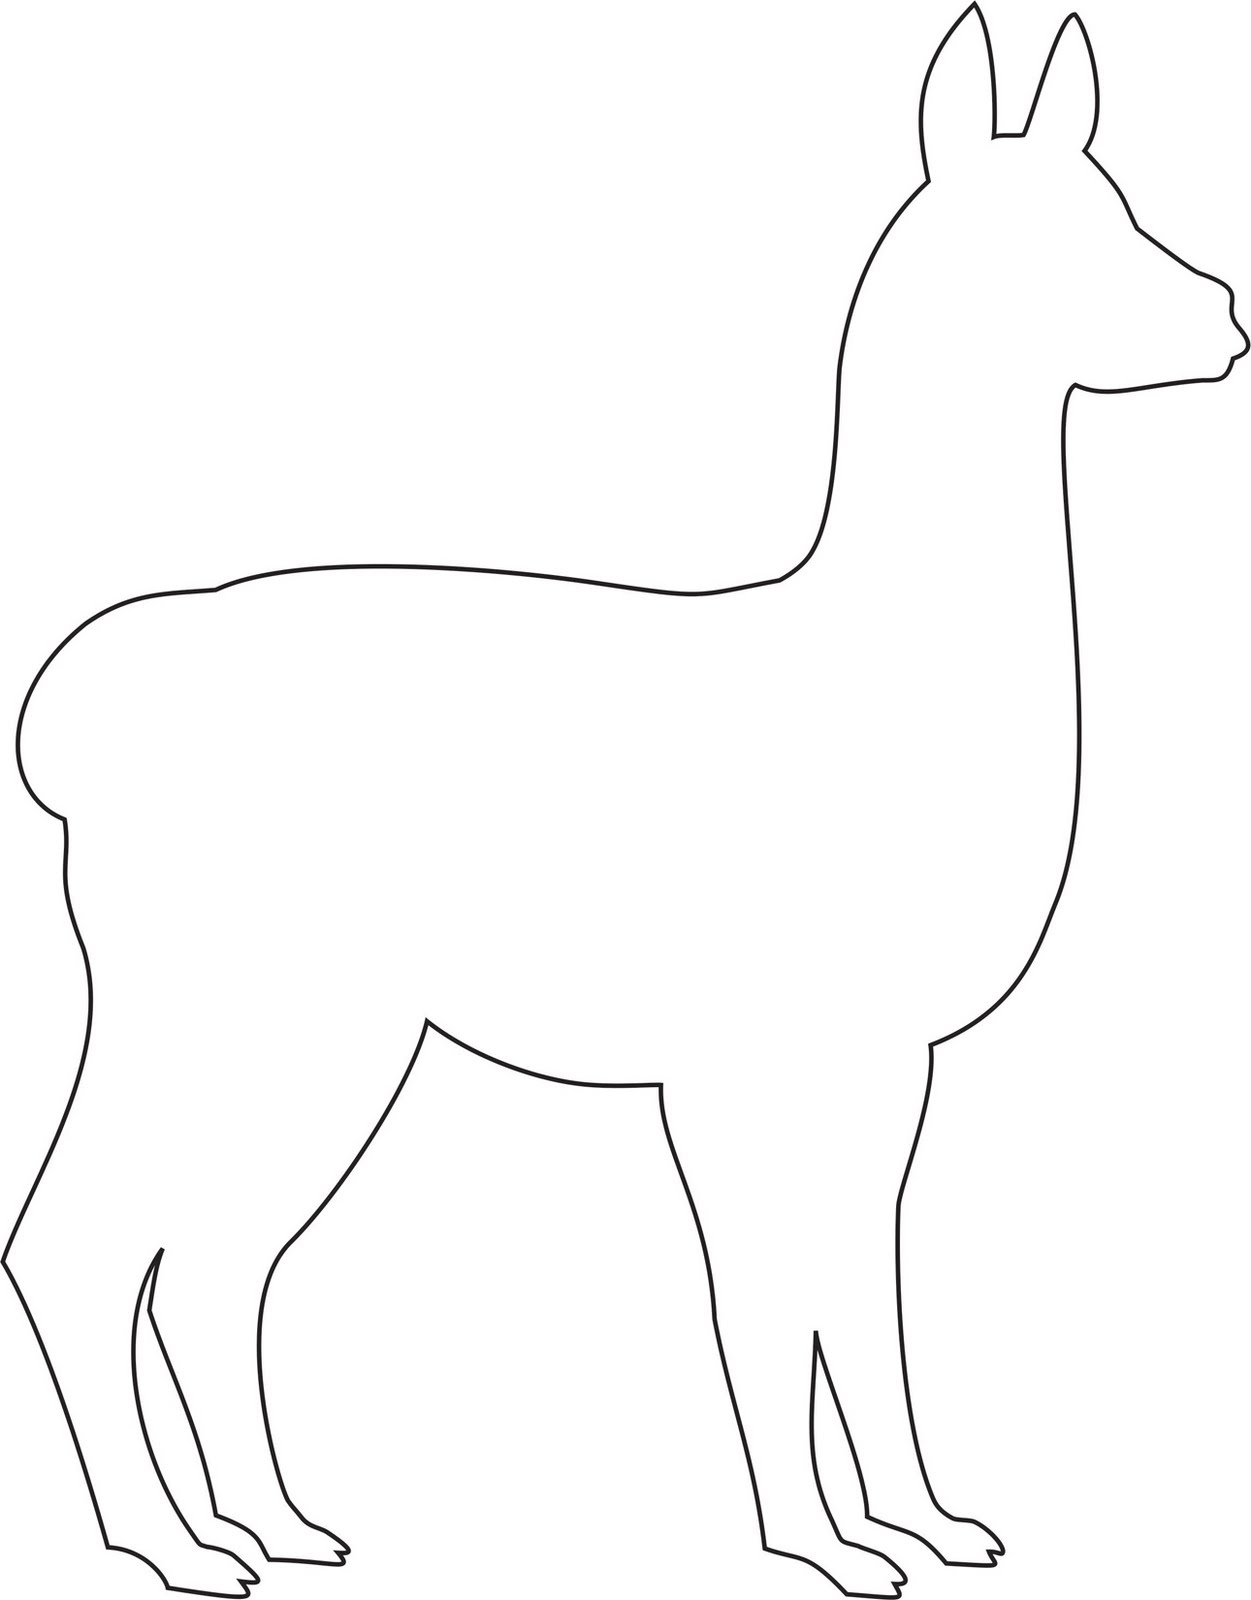 Group template printable templates. Llama clipart llama outline free library